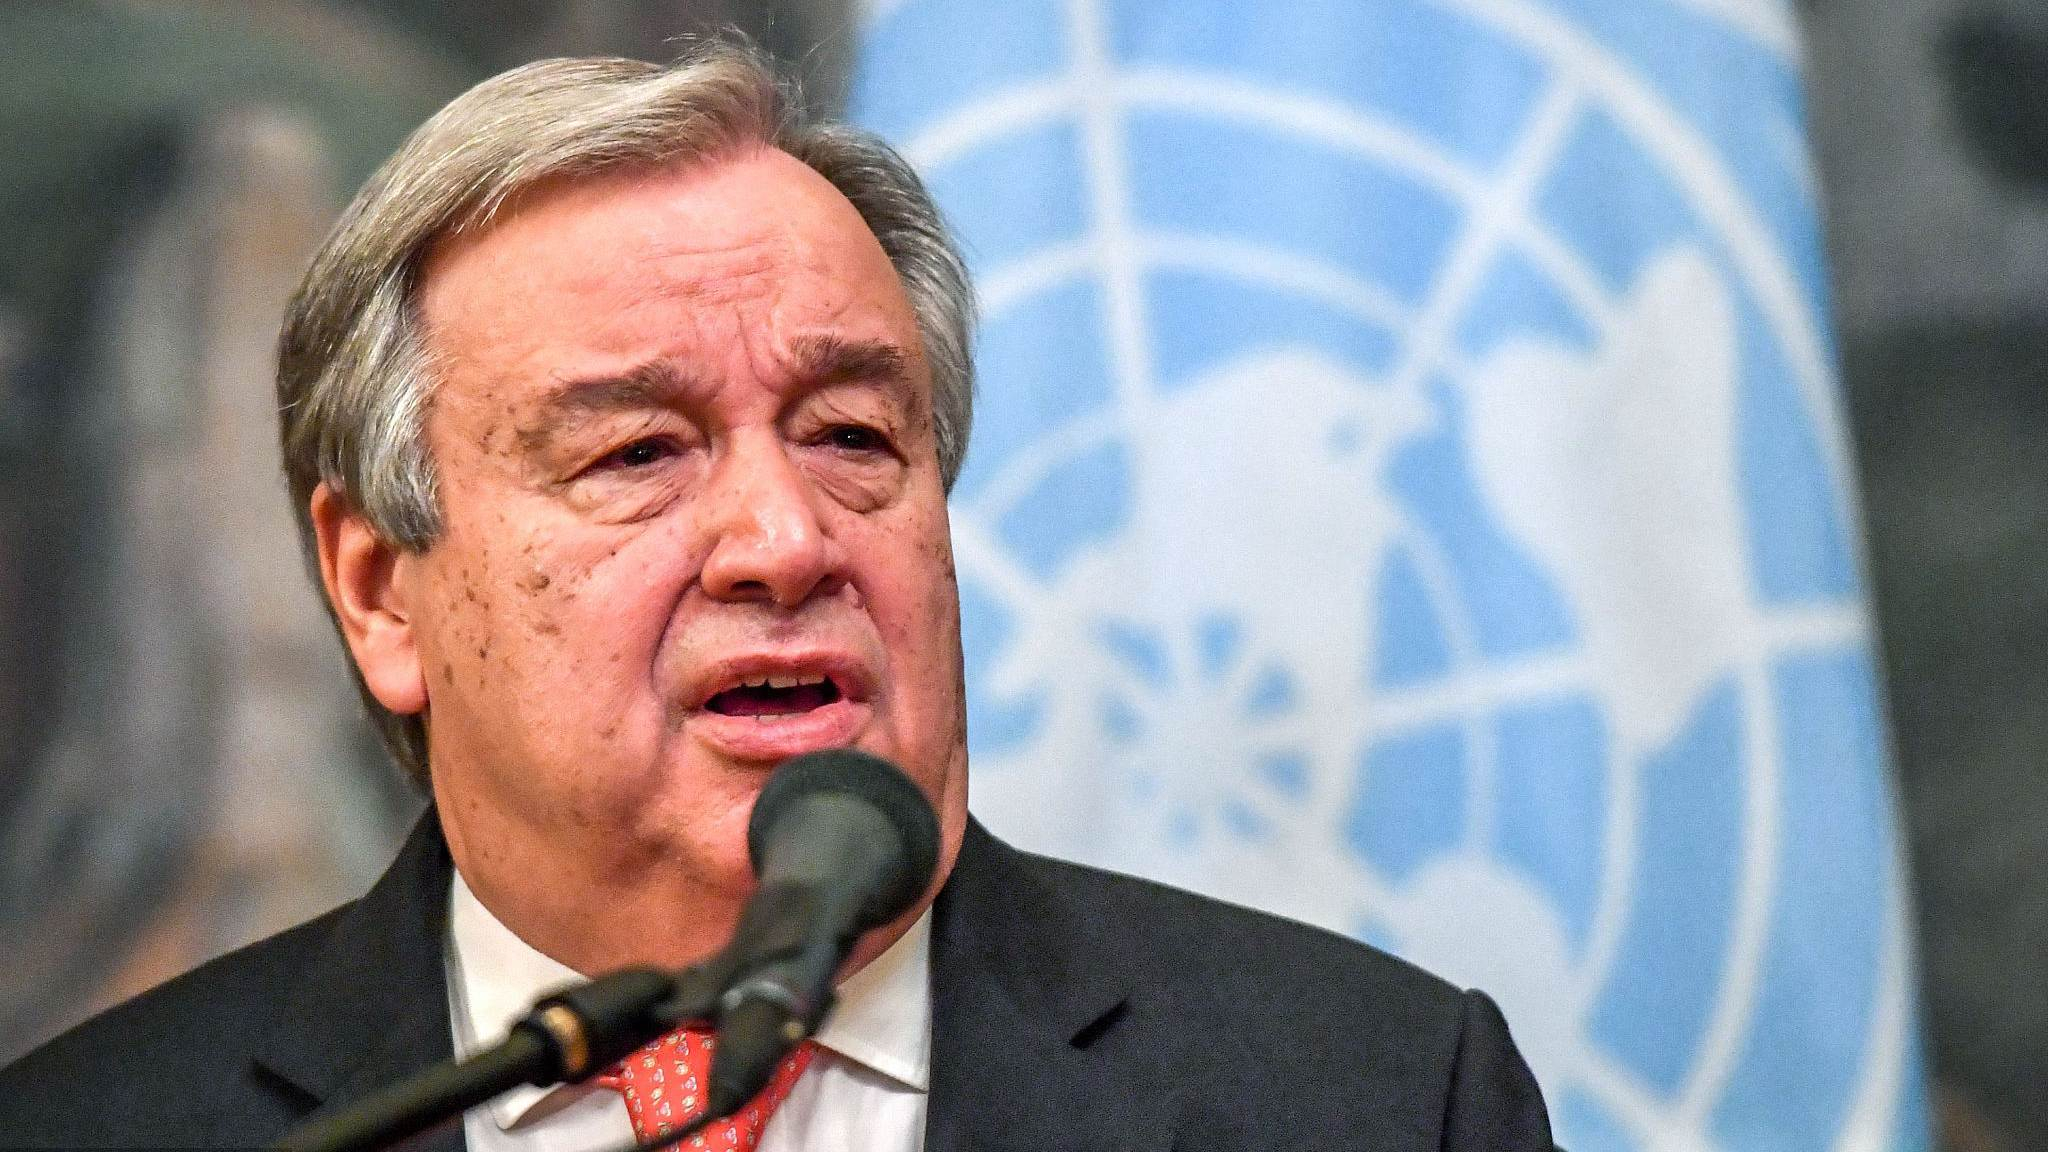 UN chief wants talks on Korean nuclear issue in New York